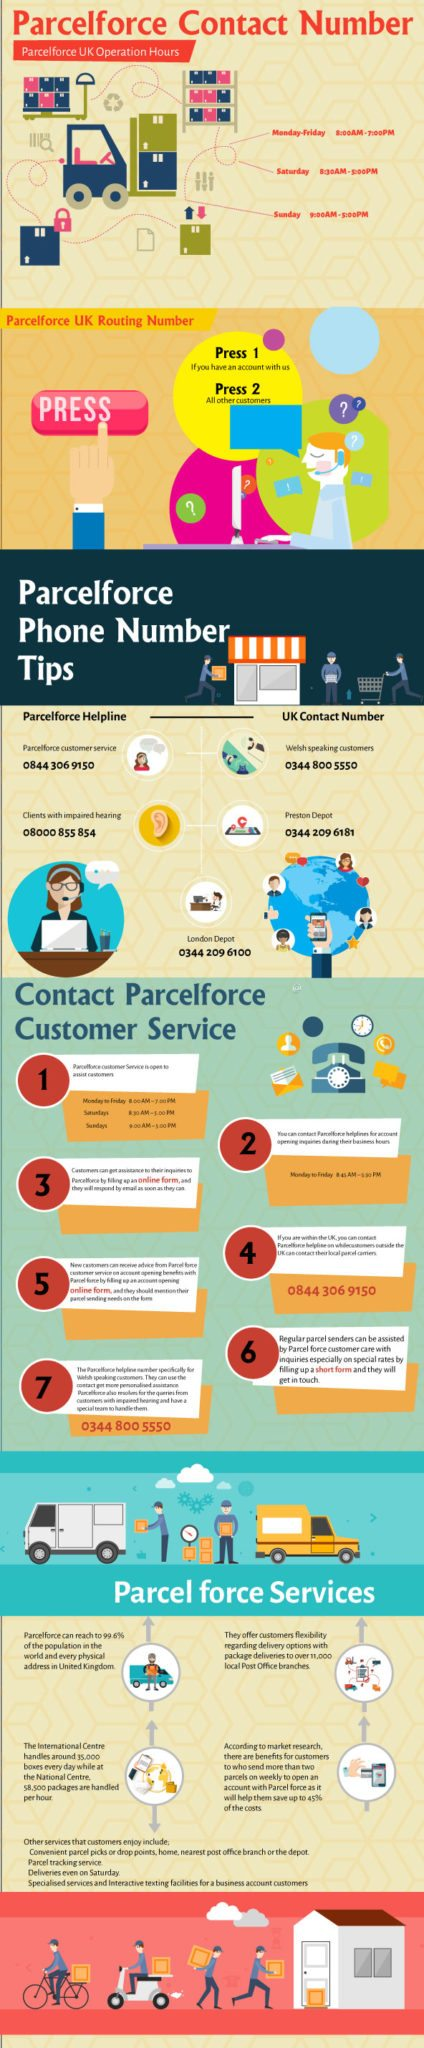 Parcelforce Contact Number